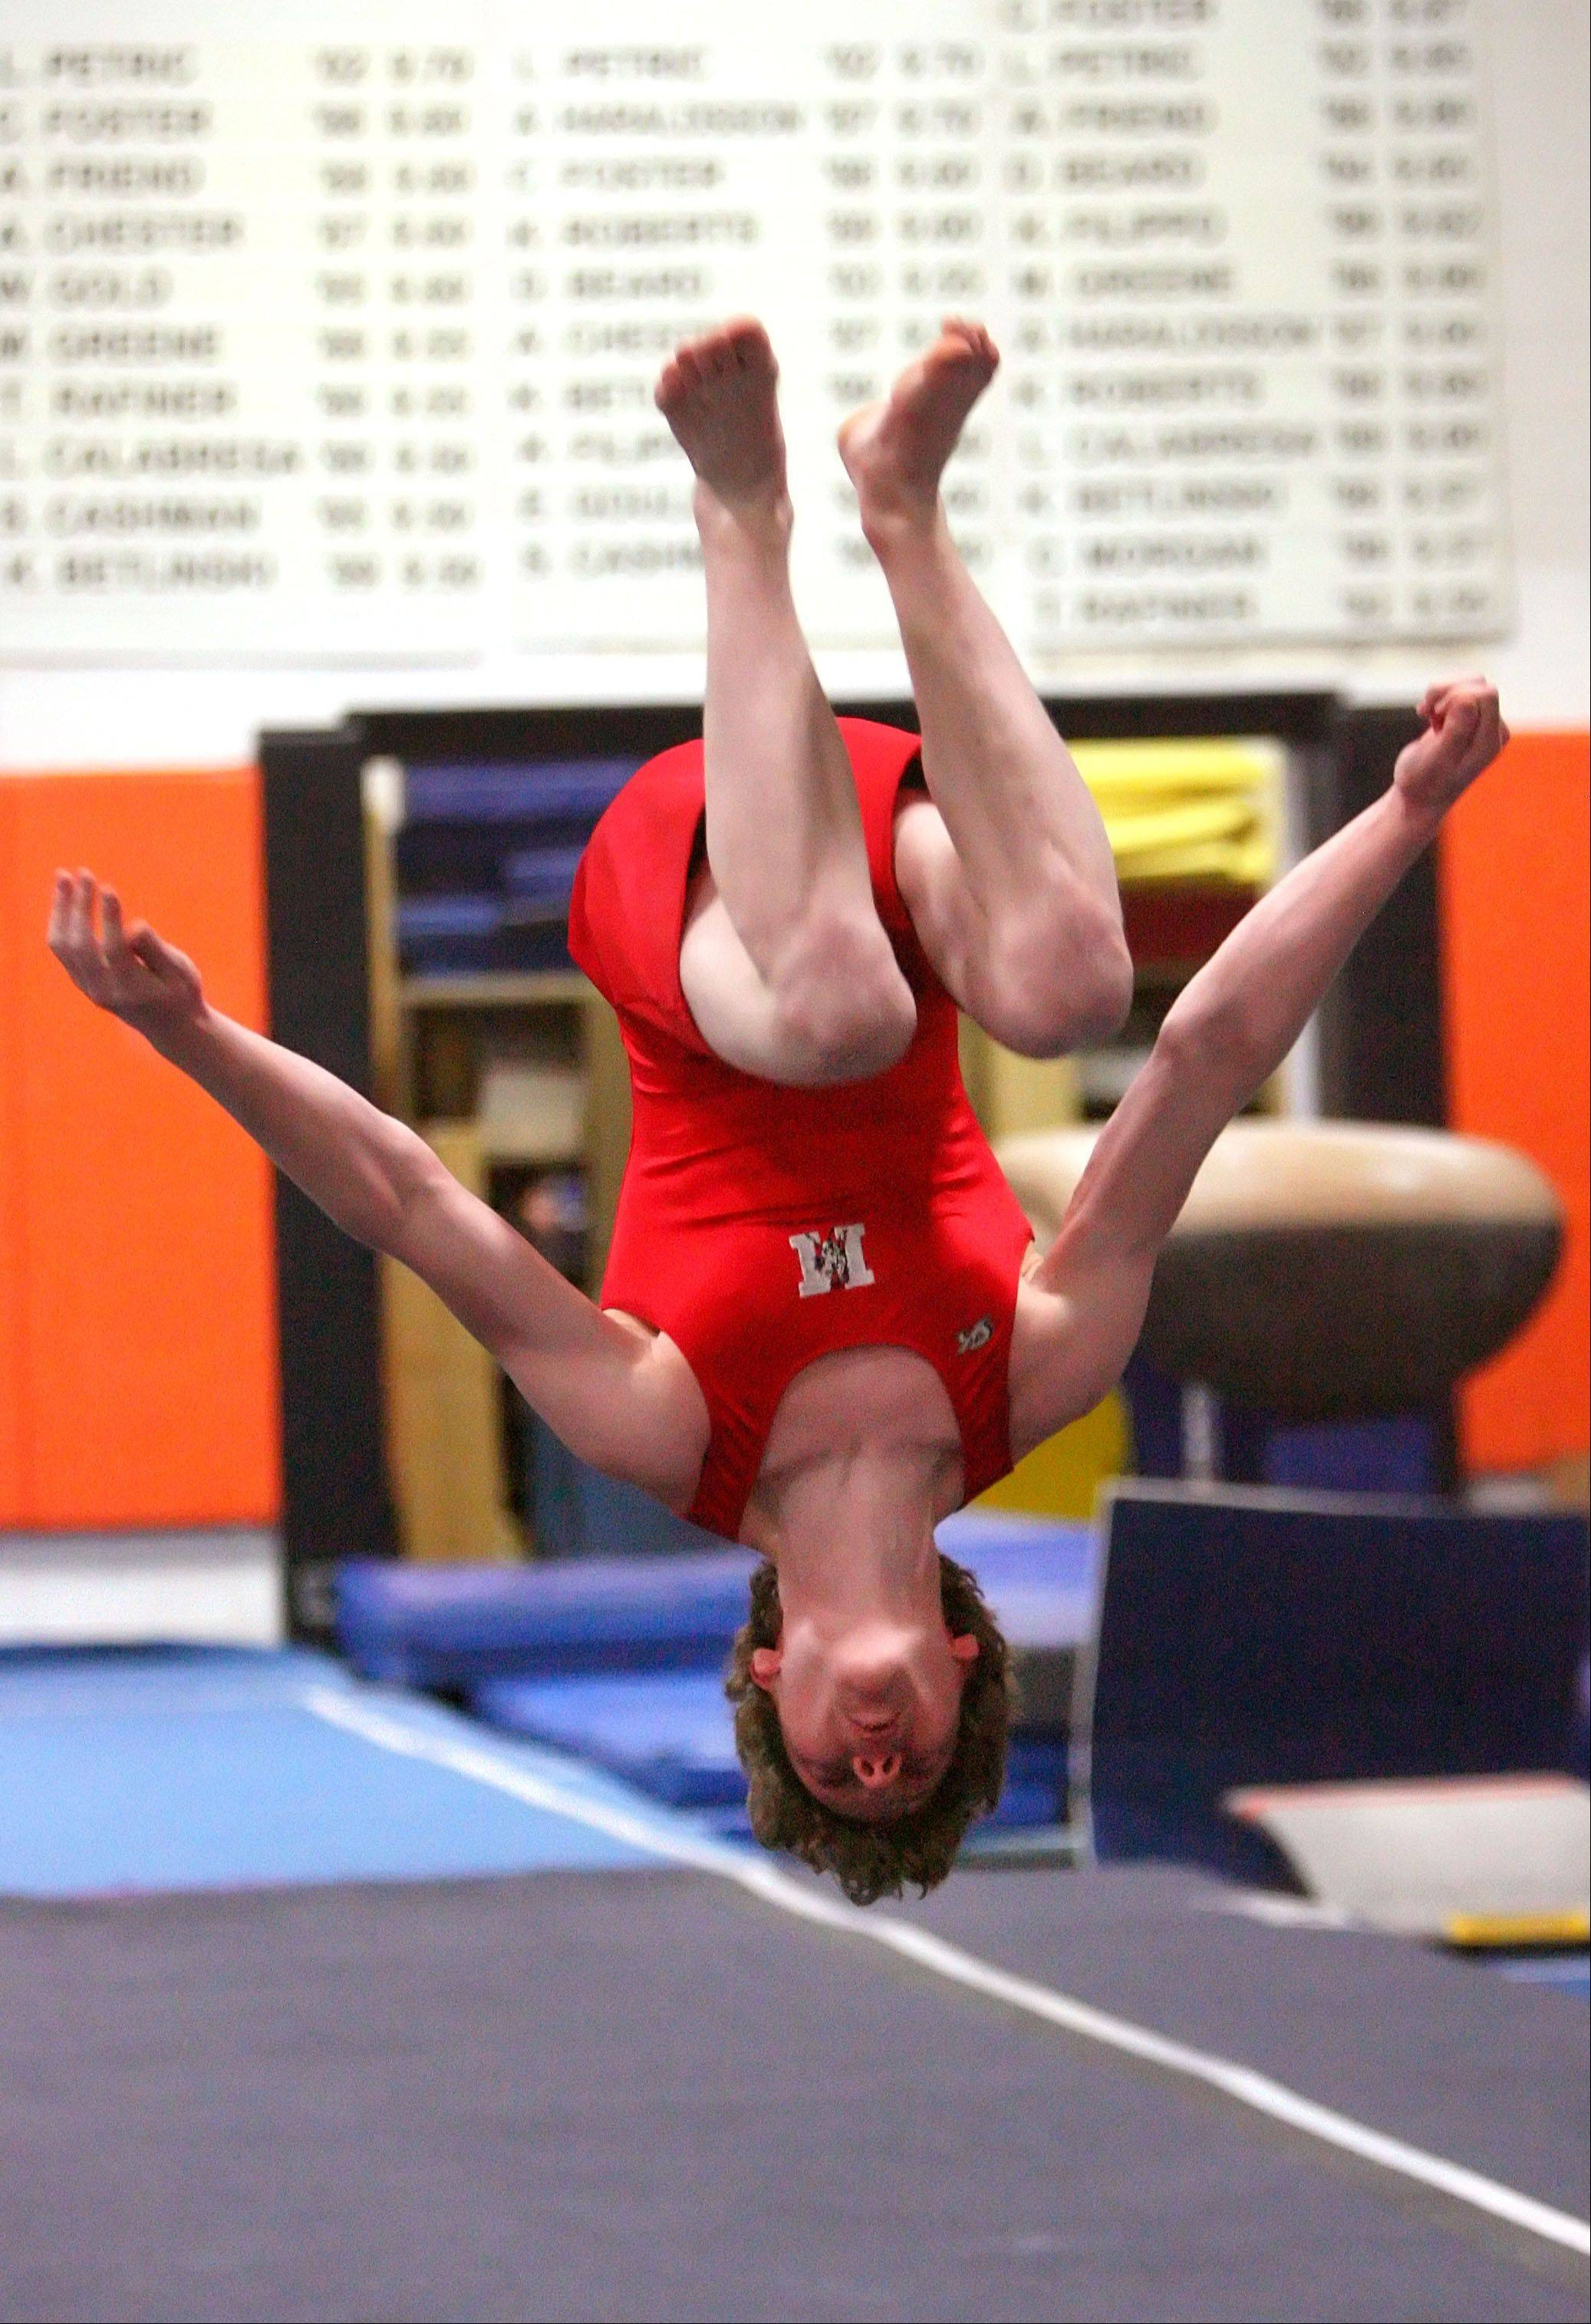 Mundelein's Jacob Petri competes on the floor exercise during Tuesday's meet at Libertyville High School.